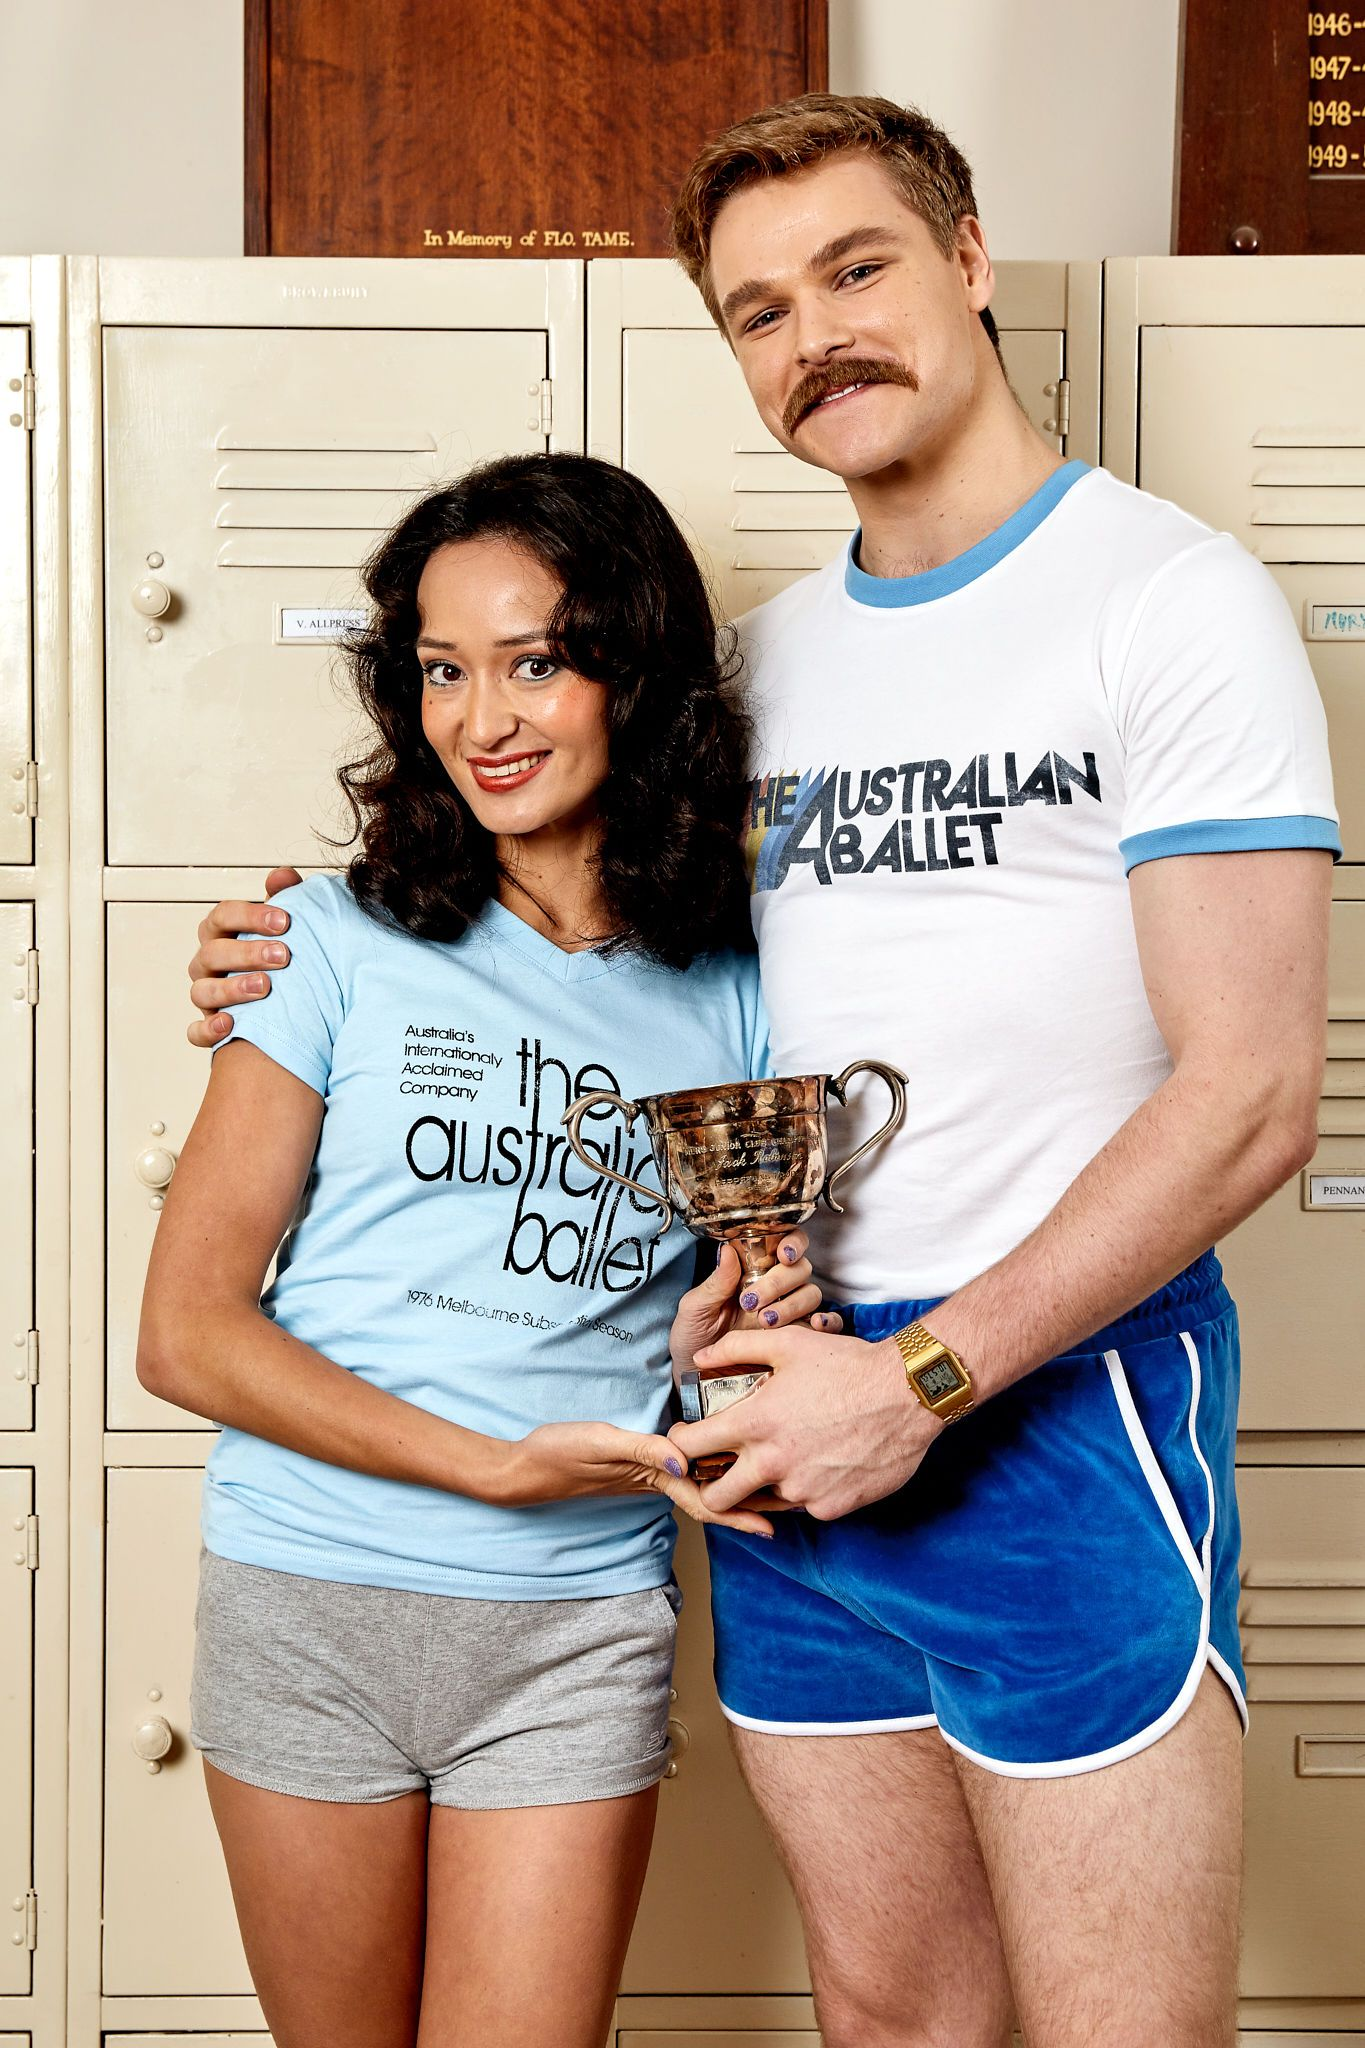 THE AUSTRALIAN BALLET'S VINTAGE TEES in 2020 Ballet